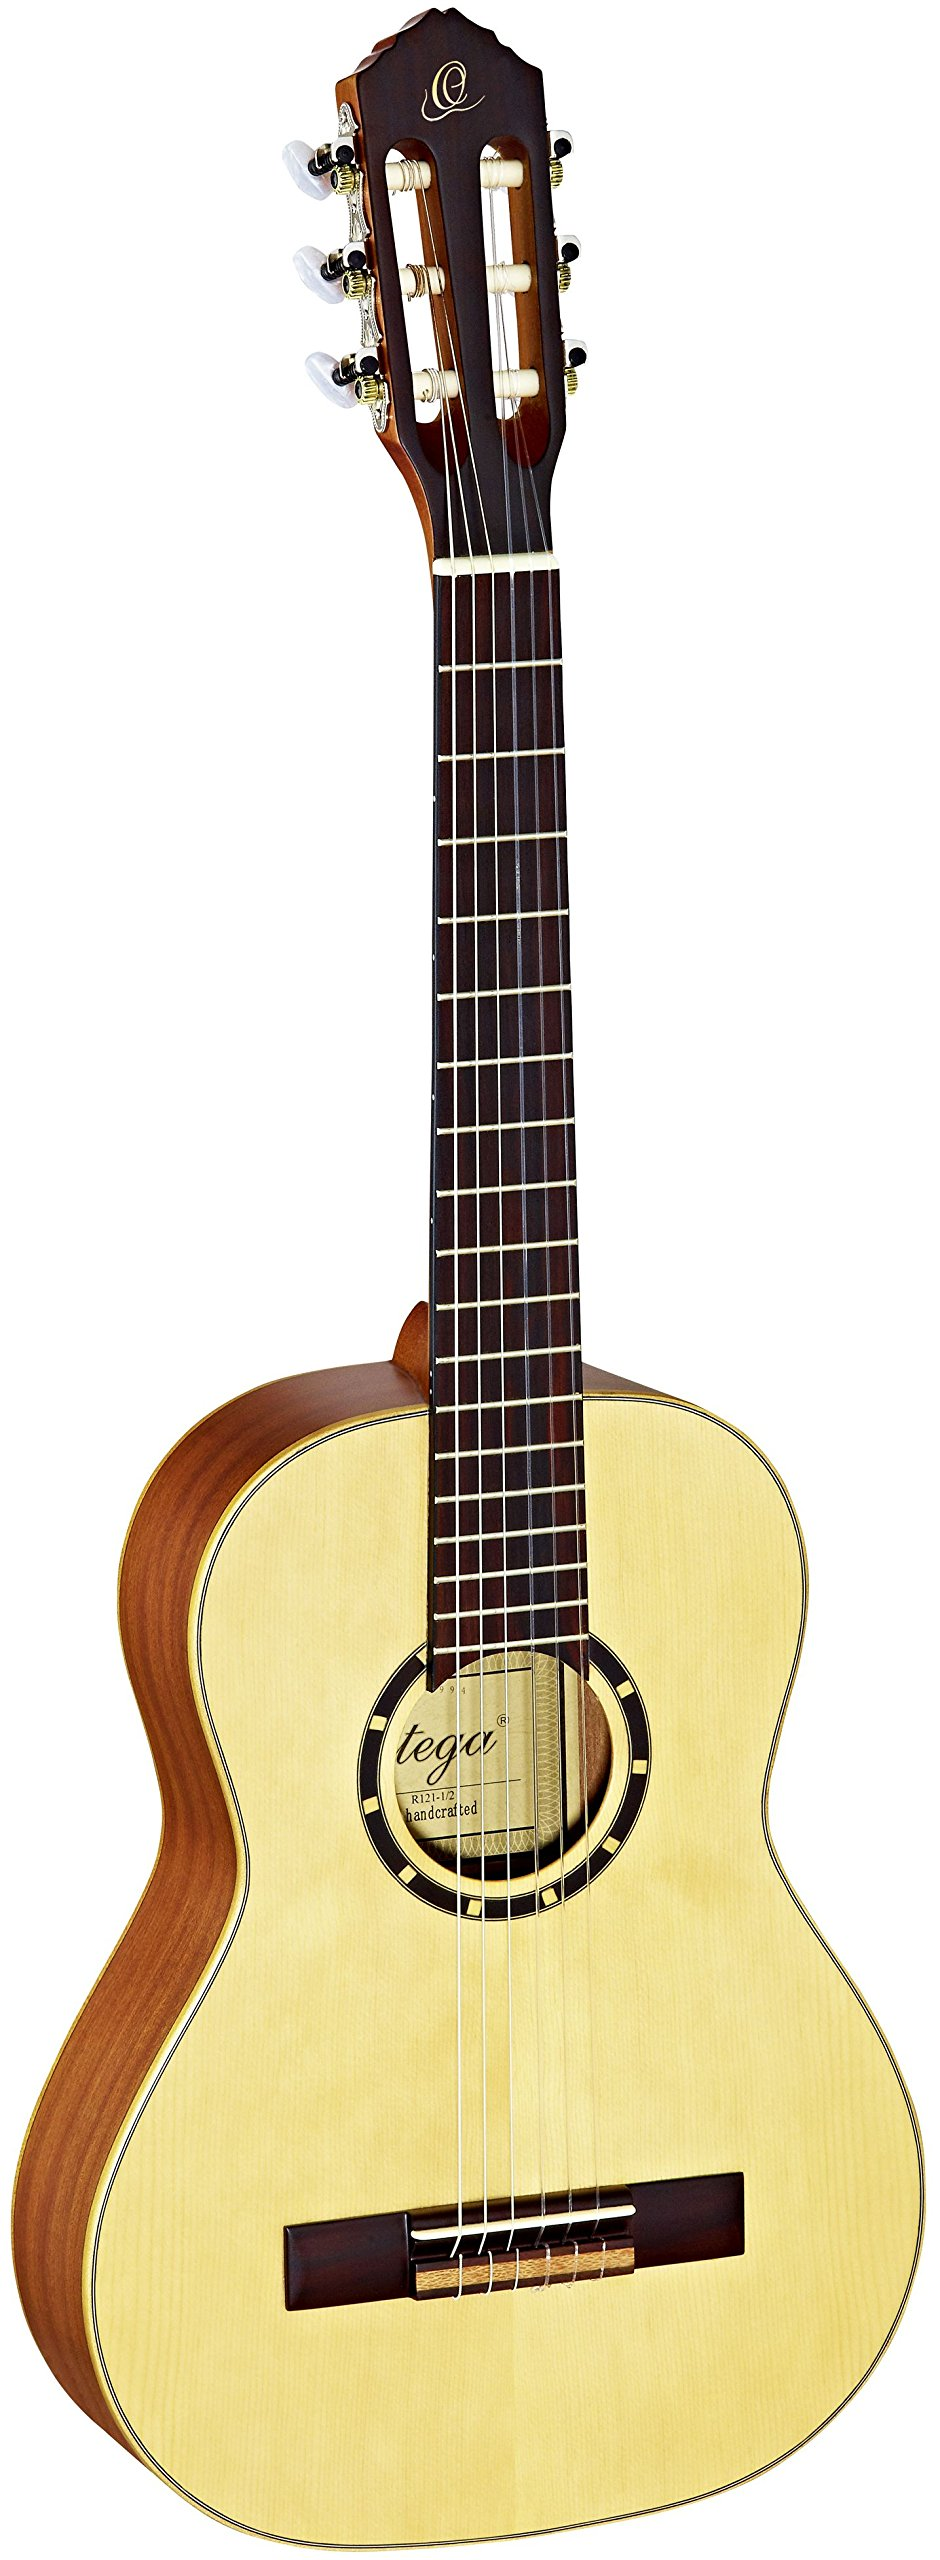 Ortega Guitars R121-1/2 Family Series 1/2 Body Size Nylon 6-String Guitar with Spruce Top and Mahogany Body, Satin Finish